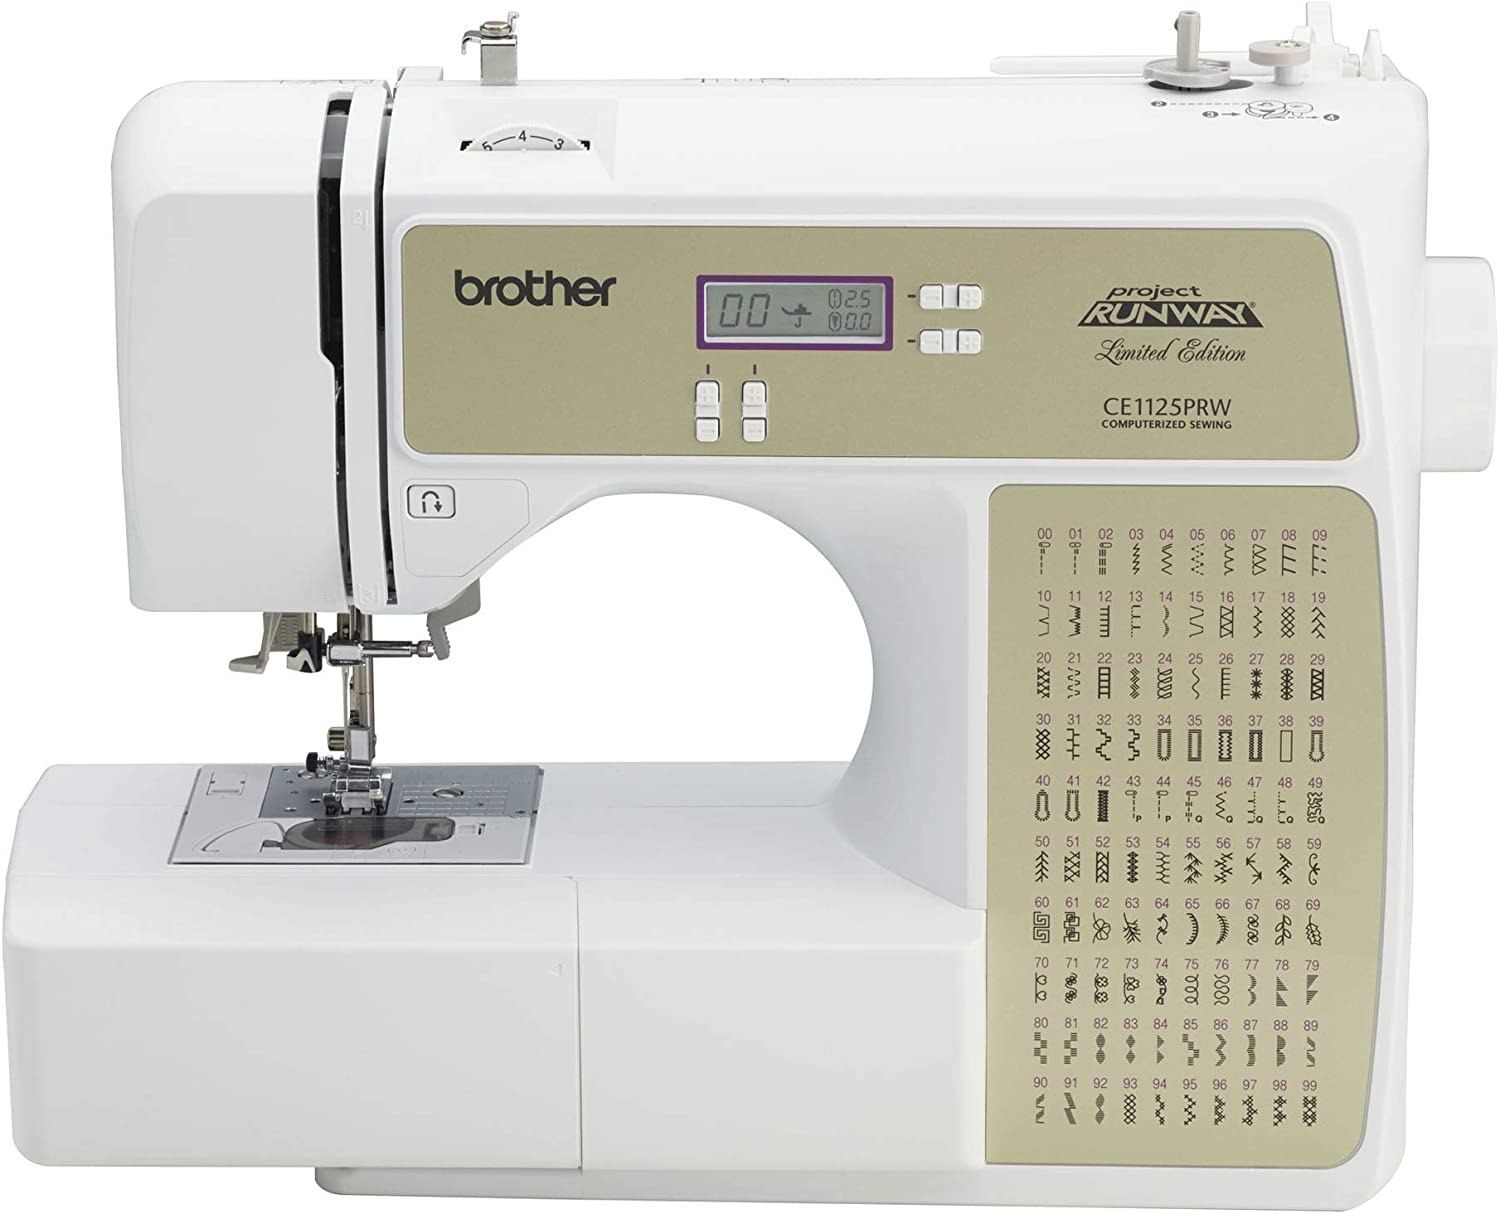 Brother Refurbished 100 Stitch Computerized Machine Sewing Super sale Fees free!! period limited whit